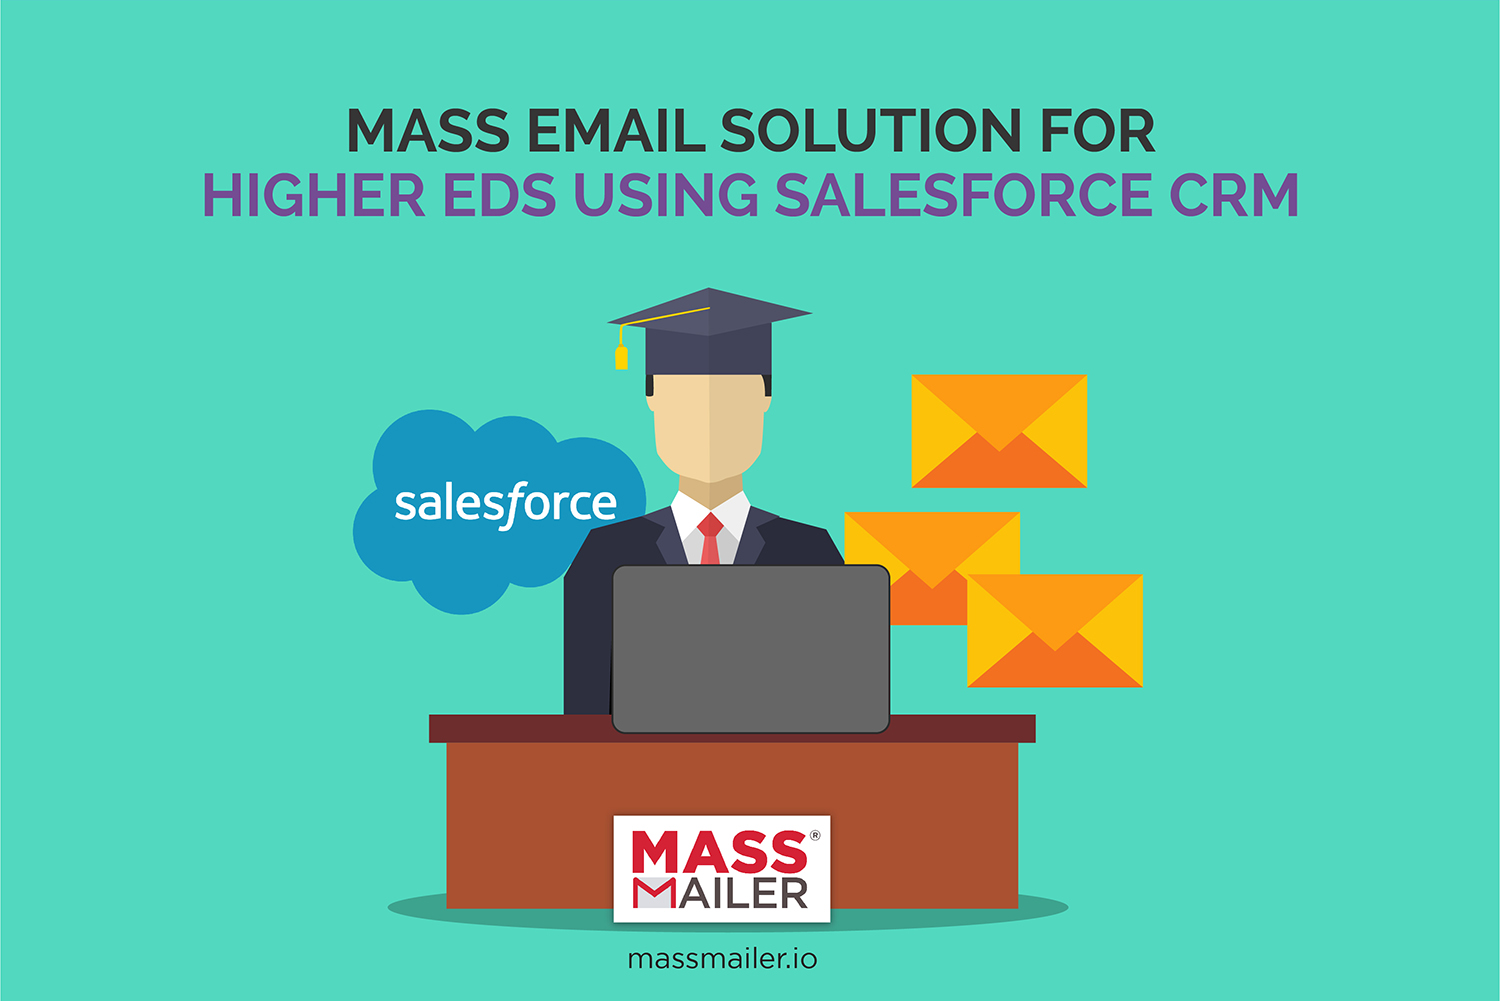 Salesforce Mass Email Solution for Higher Ed